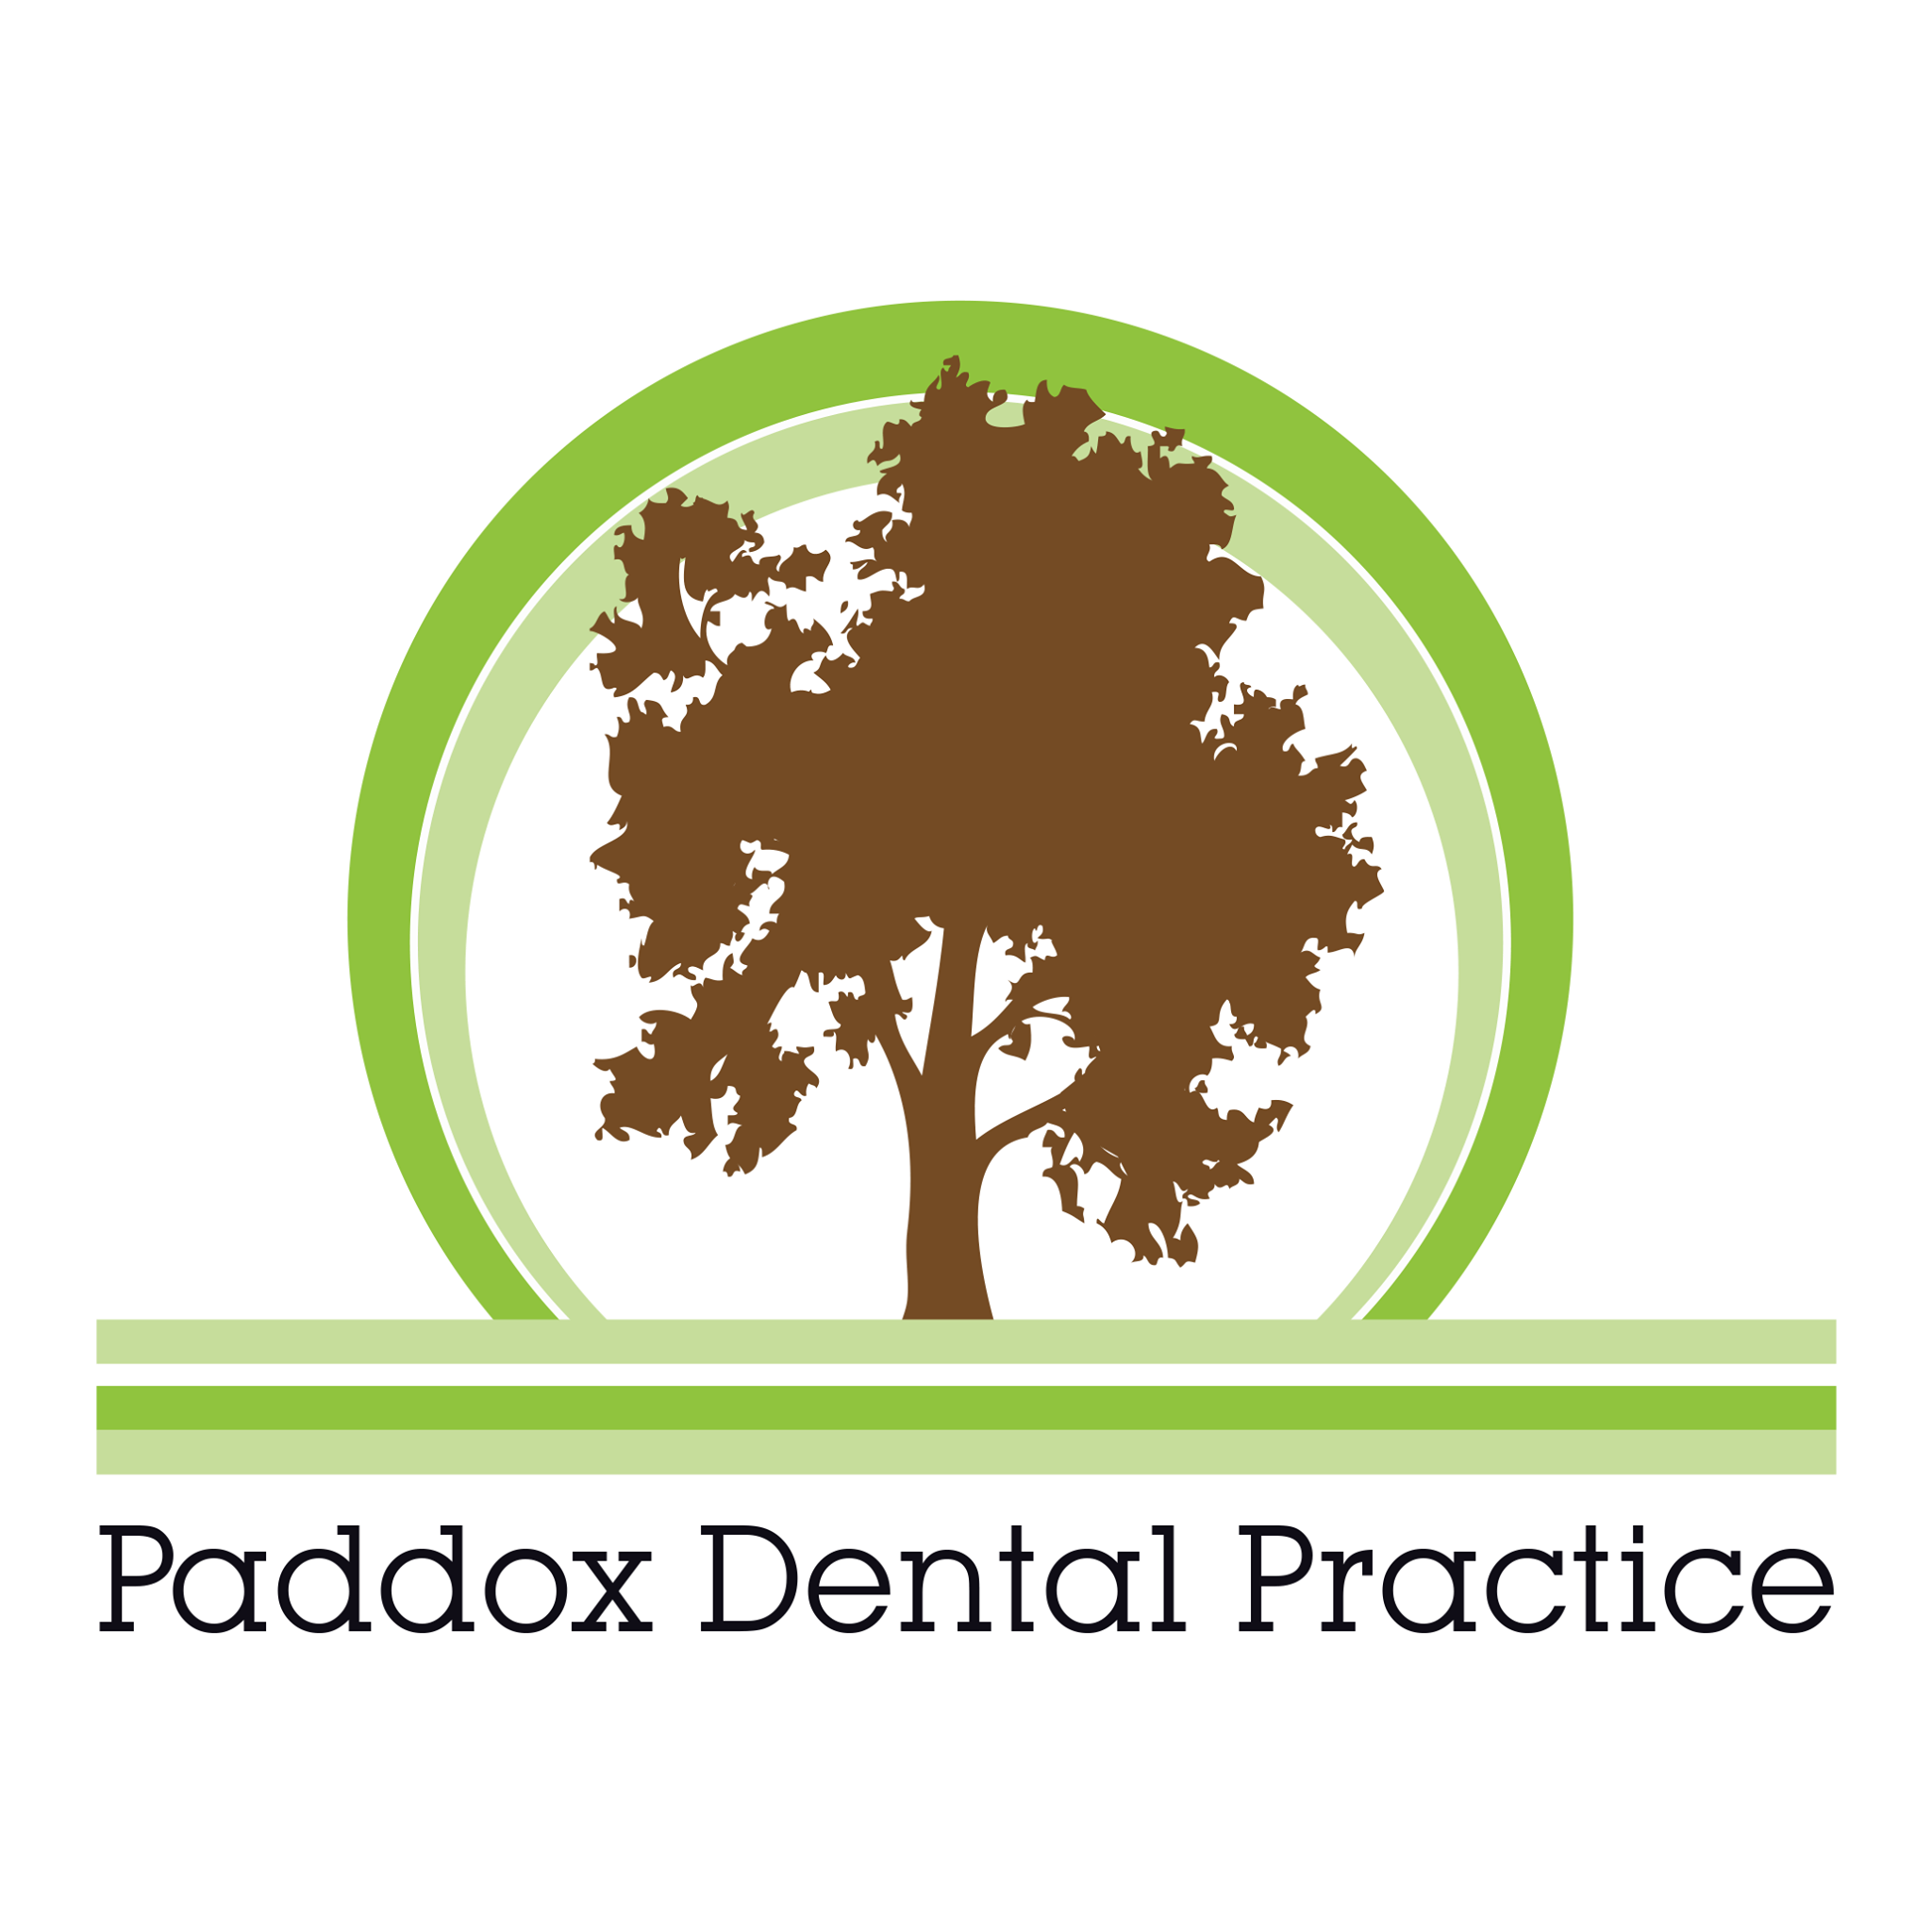 Mrs Lisa Horrocks    Dental Nurse   National Dental Nursing Certificate  Country of issue: United Kingdom  GDC registration number: 133589   Lisa joined the practice in 2000. She gained her Dental Nurse Qualification in 2008. Lisa has a keen interest in all things Dentistry.